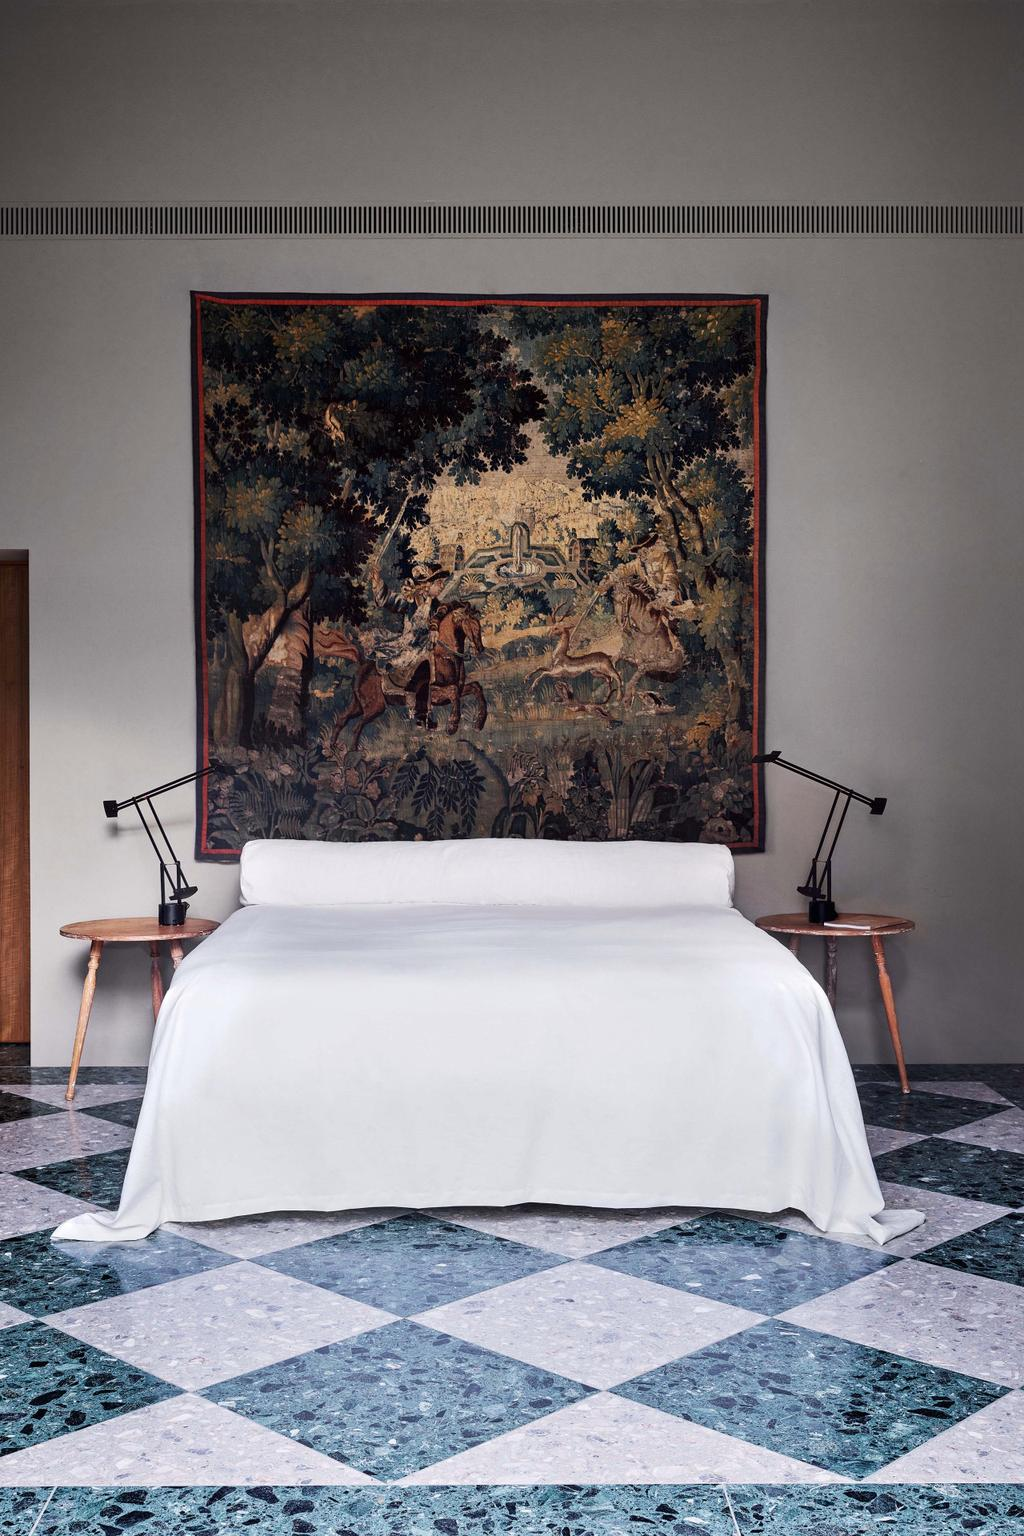 Vogue Living - Arent and Pyke Studio - Ise organic bed linen